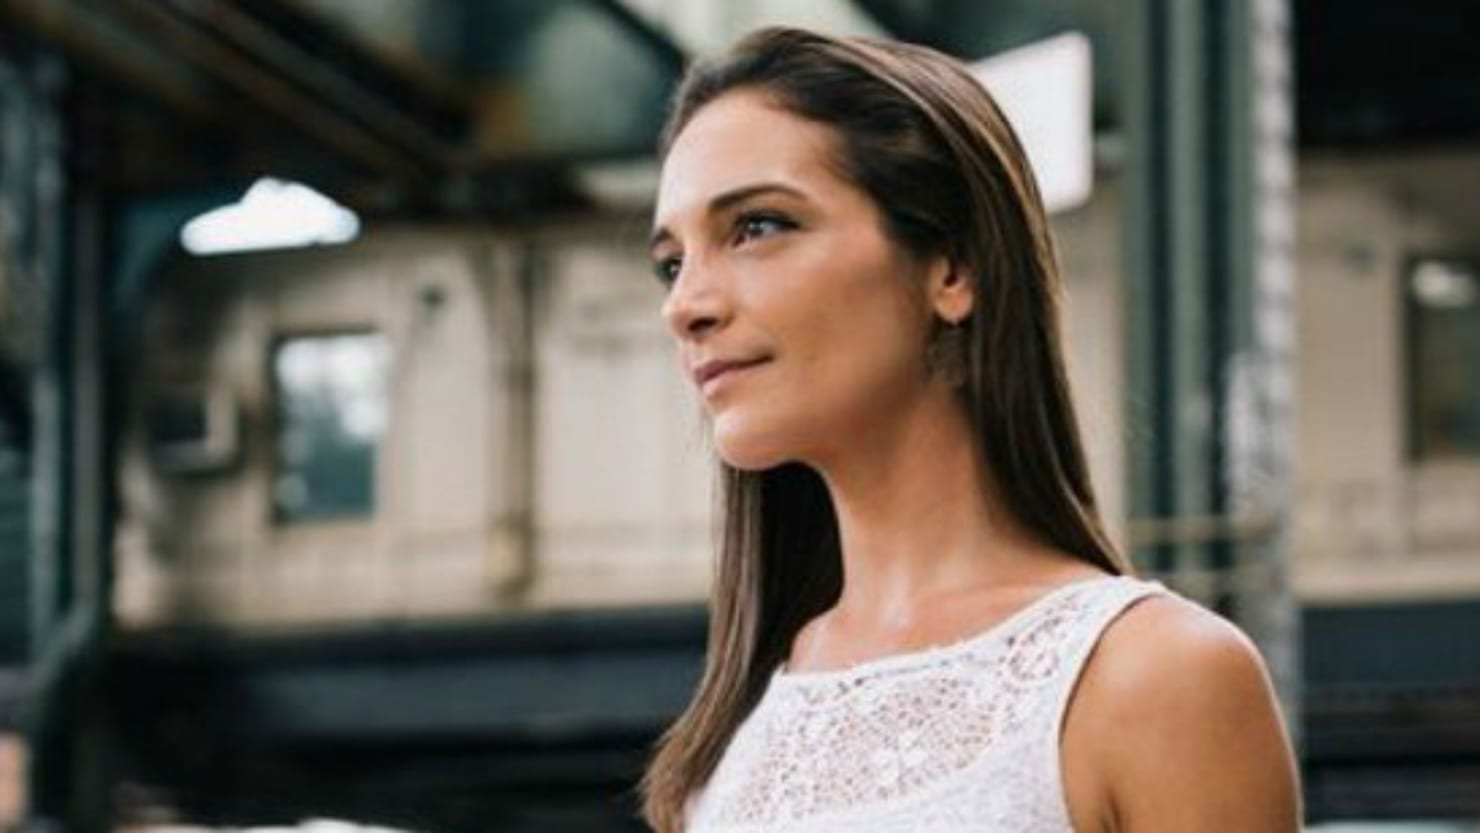 Julia Salazar Ousts Brooklyn Incumbent As Dsa Claims Another Win